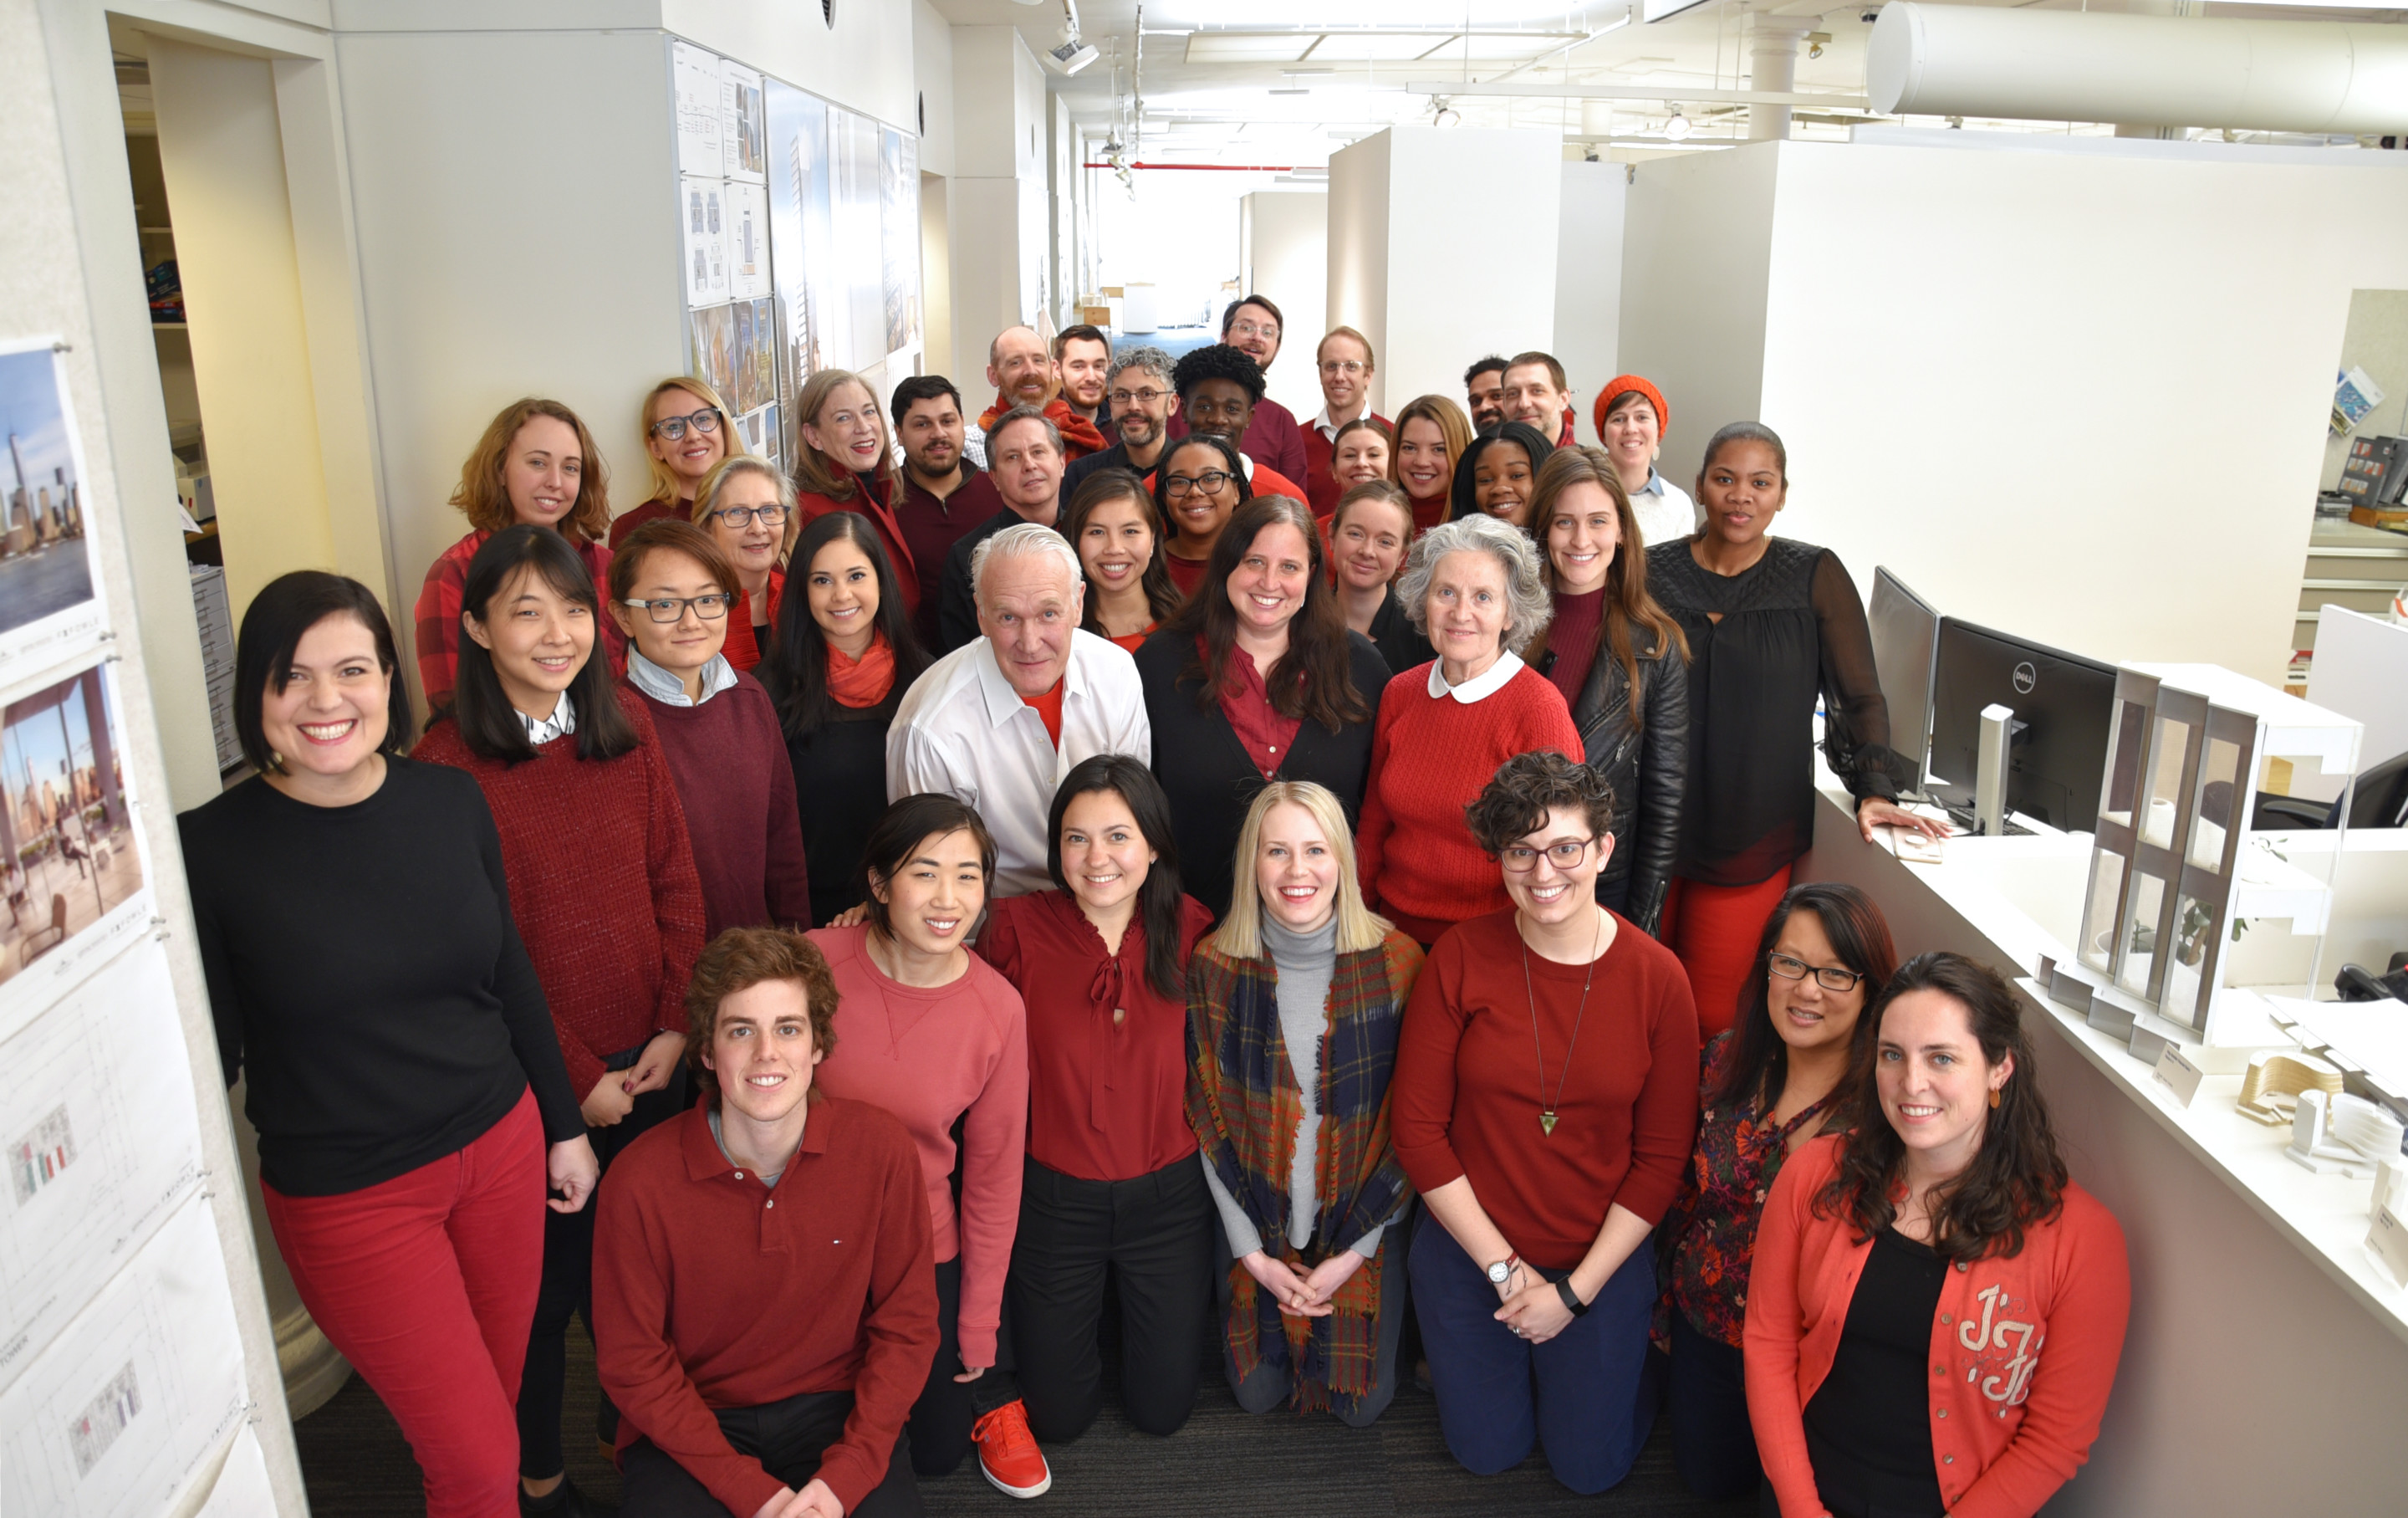 FXCollaborative employees in red gathered for womens day